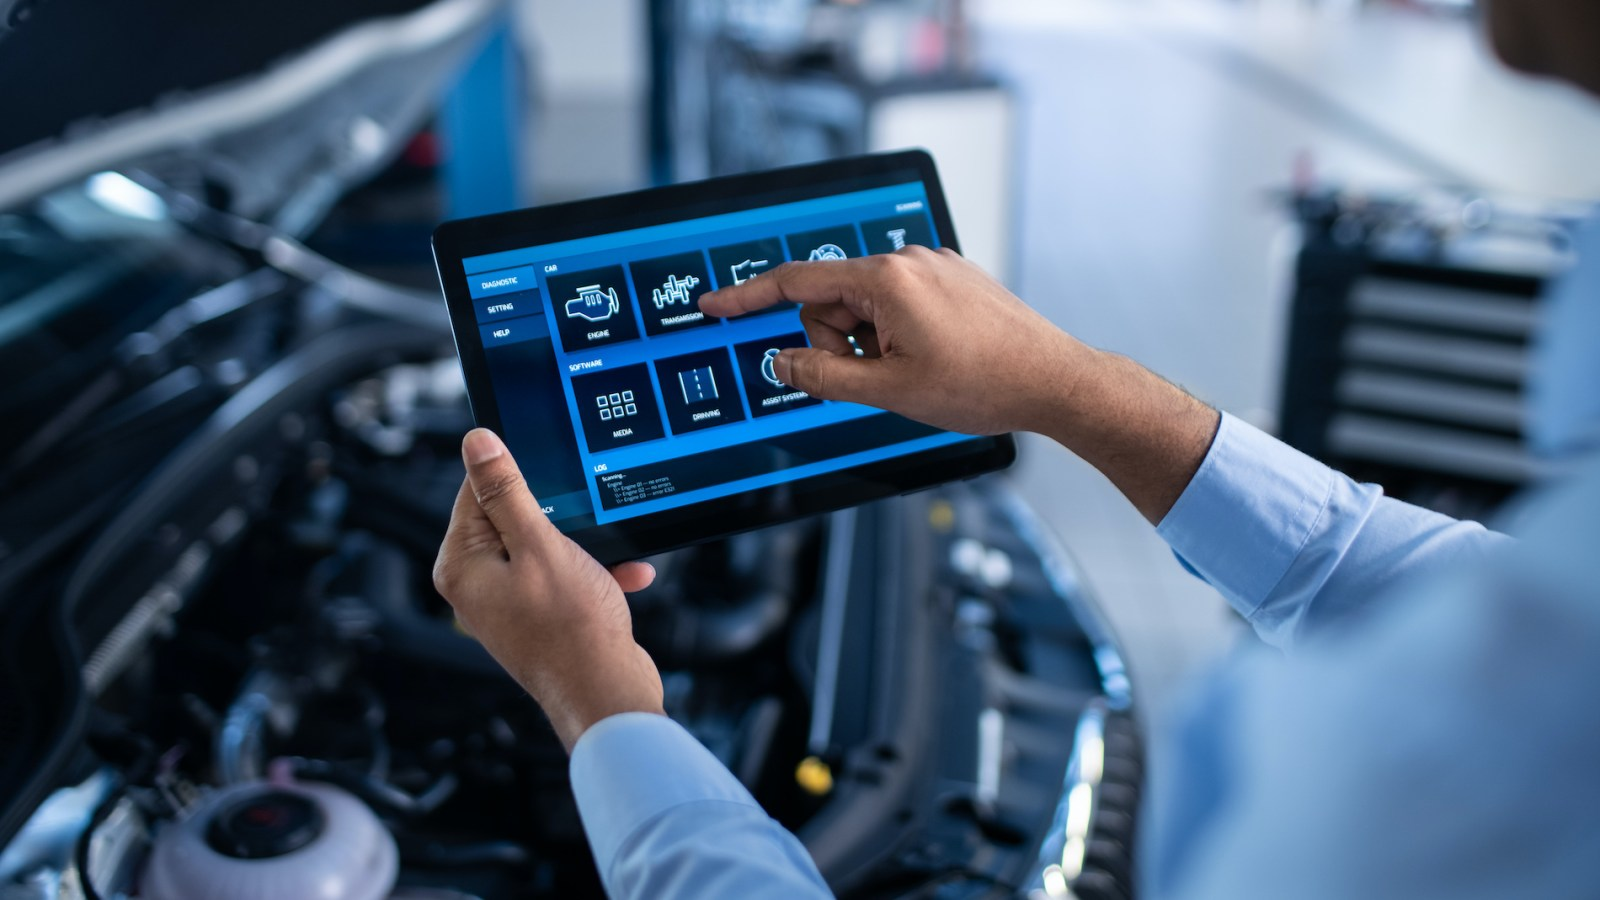 Auto Repair Tablet Computer